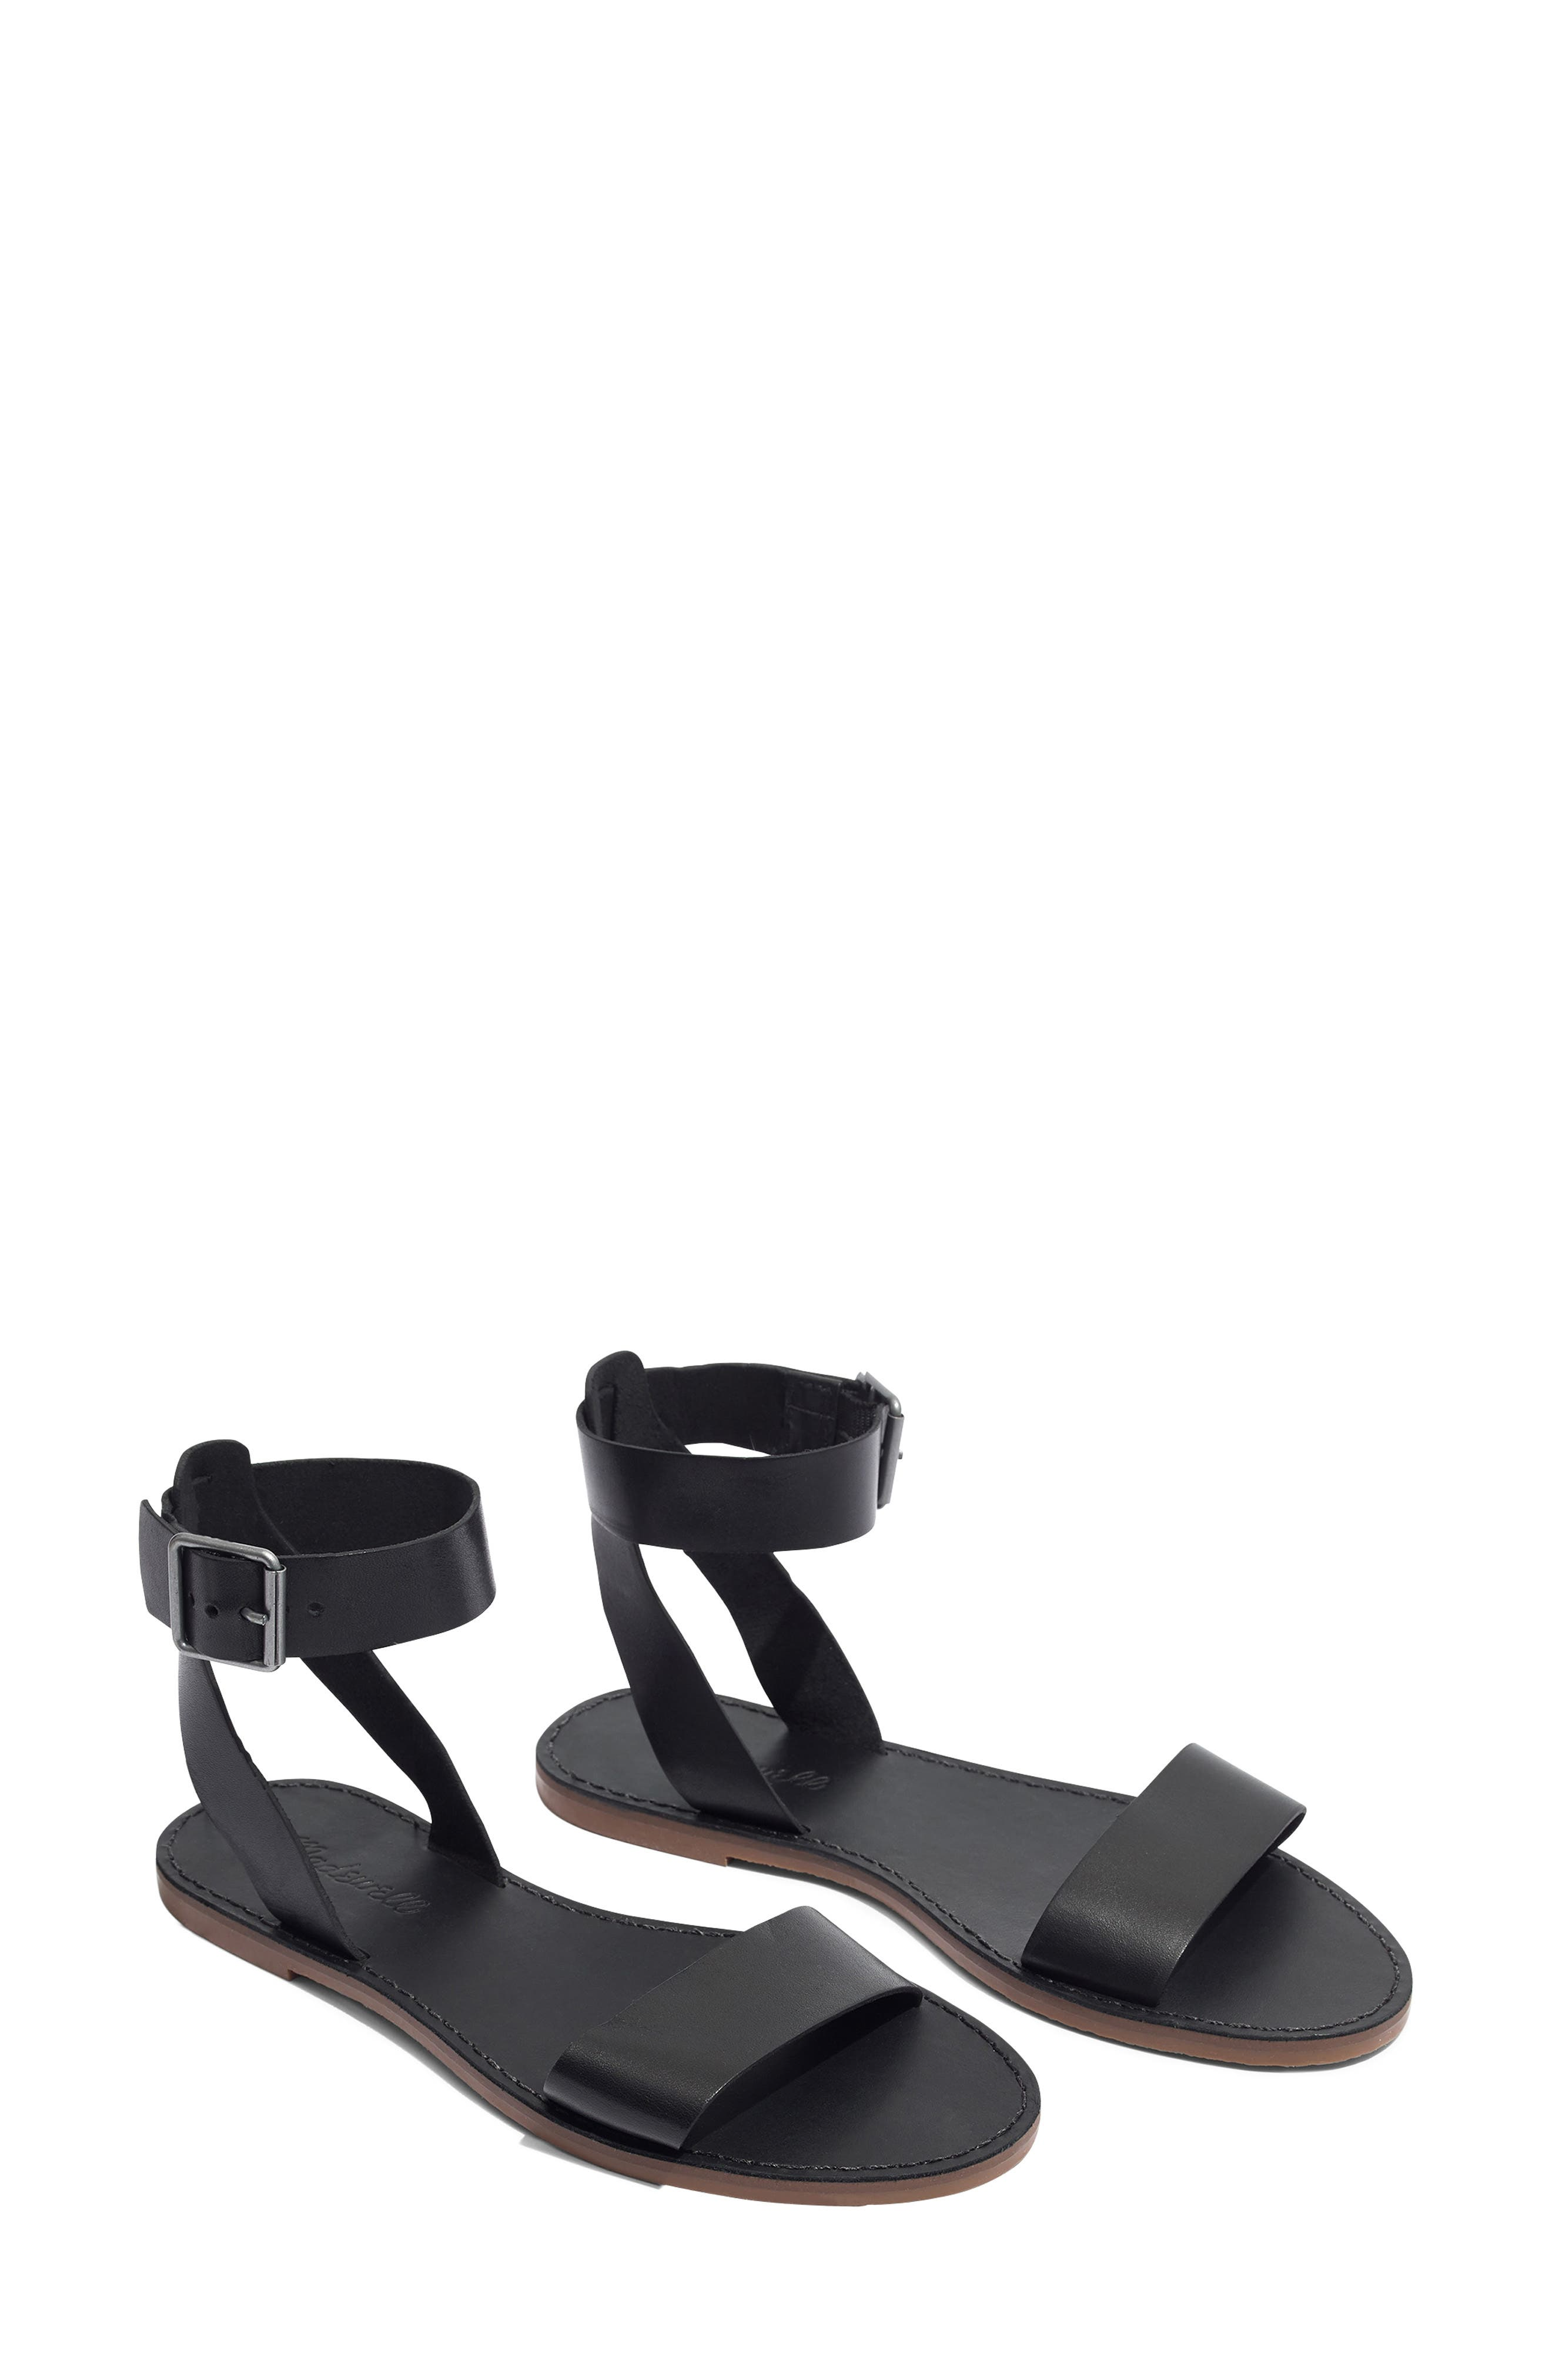 The Boardwalk Ankle Strap Sandal by Madewell